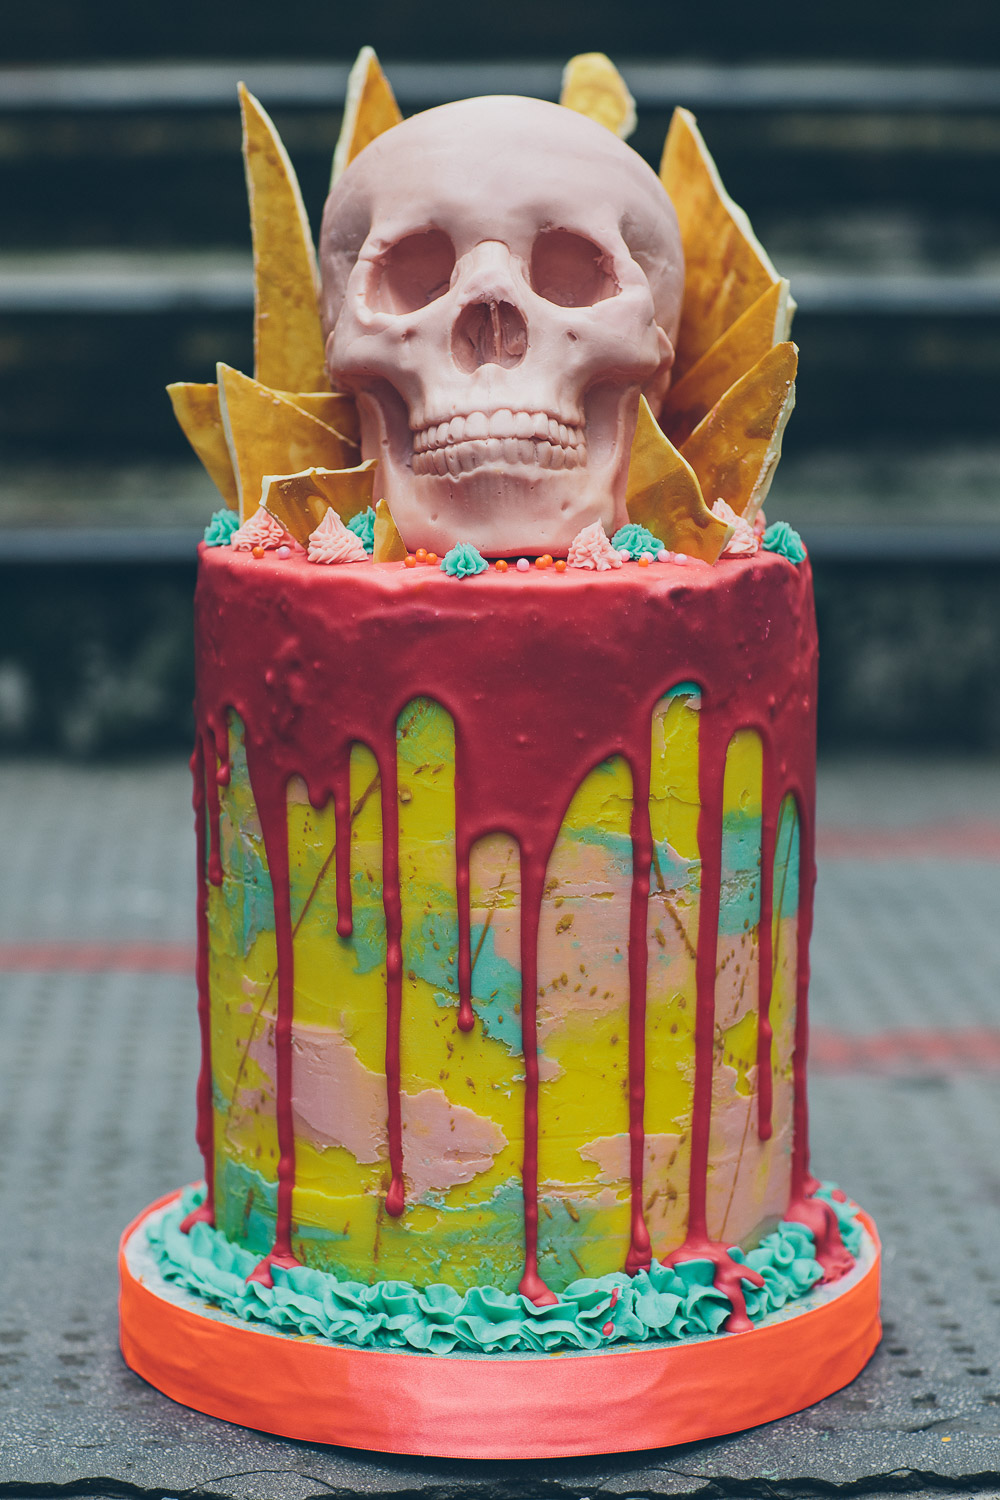 Tattooed Bakers, creative cakes, london cake bakers, london wedding cakes, creative wedding cake, skull cake, skull wedding cake, neon wedding cake, shoreditch wedding cake, alternative wedding cake, cool wedding cake